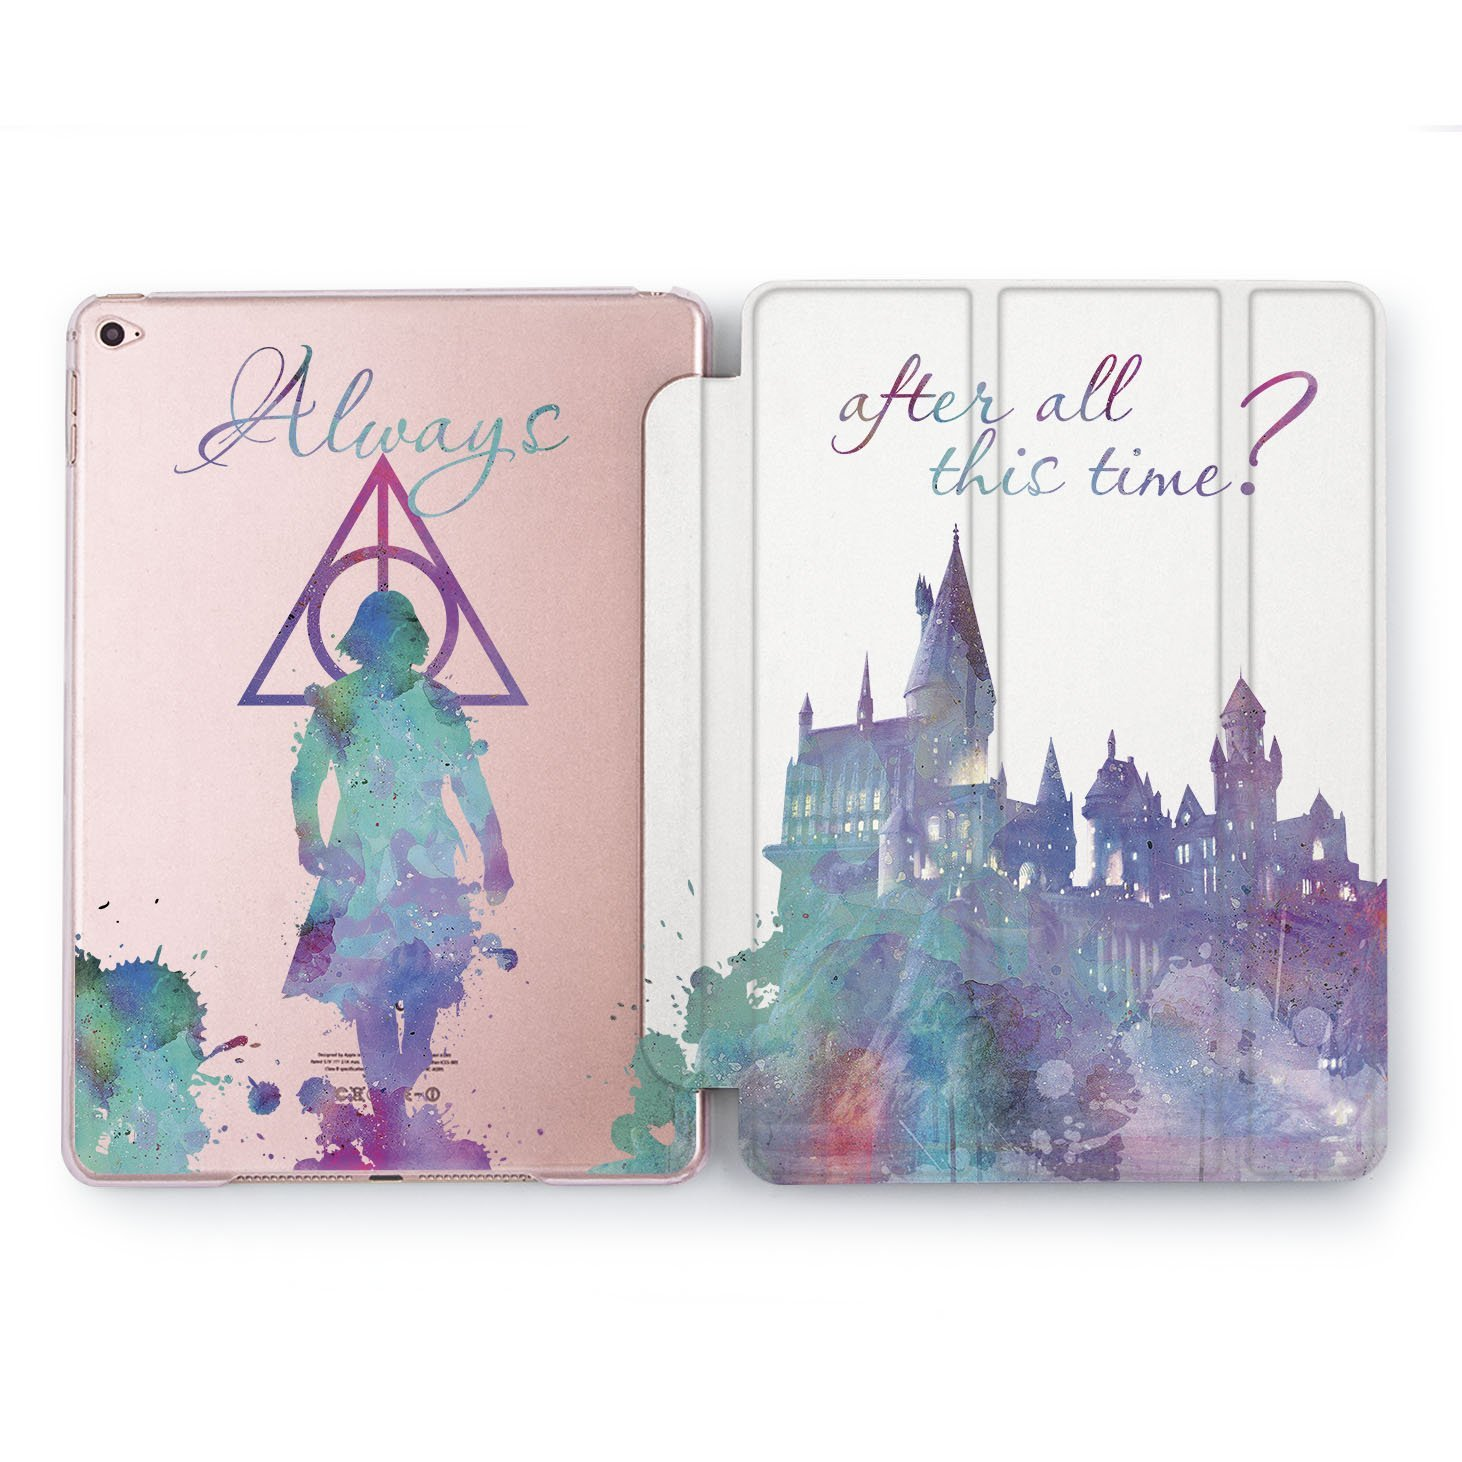 Wonder Wild iPad mini 1 2 3 4 / Air 2 / Pro 9.7 10.5 12.9 // Samsung Galaxy Tablet S2 / S3 / A 8.0 / A 10.1 inch case 2017 / 2018 Harry Potter and Deathly Hallows